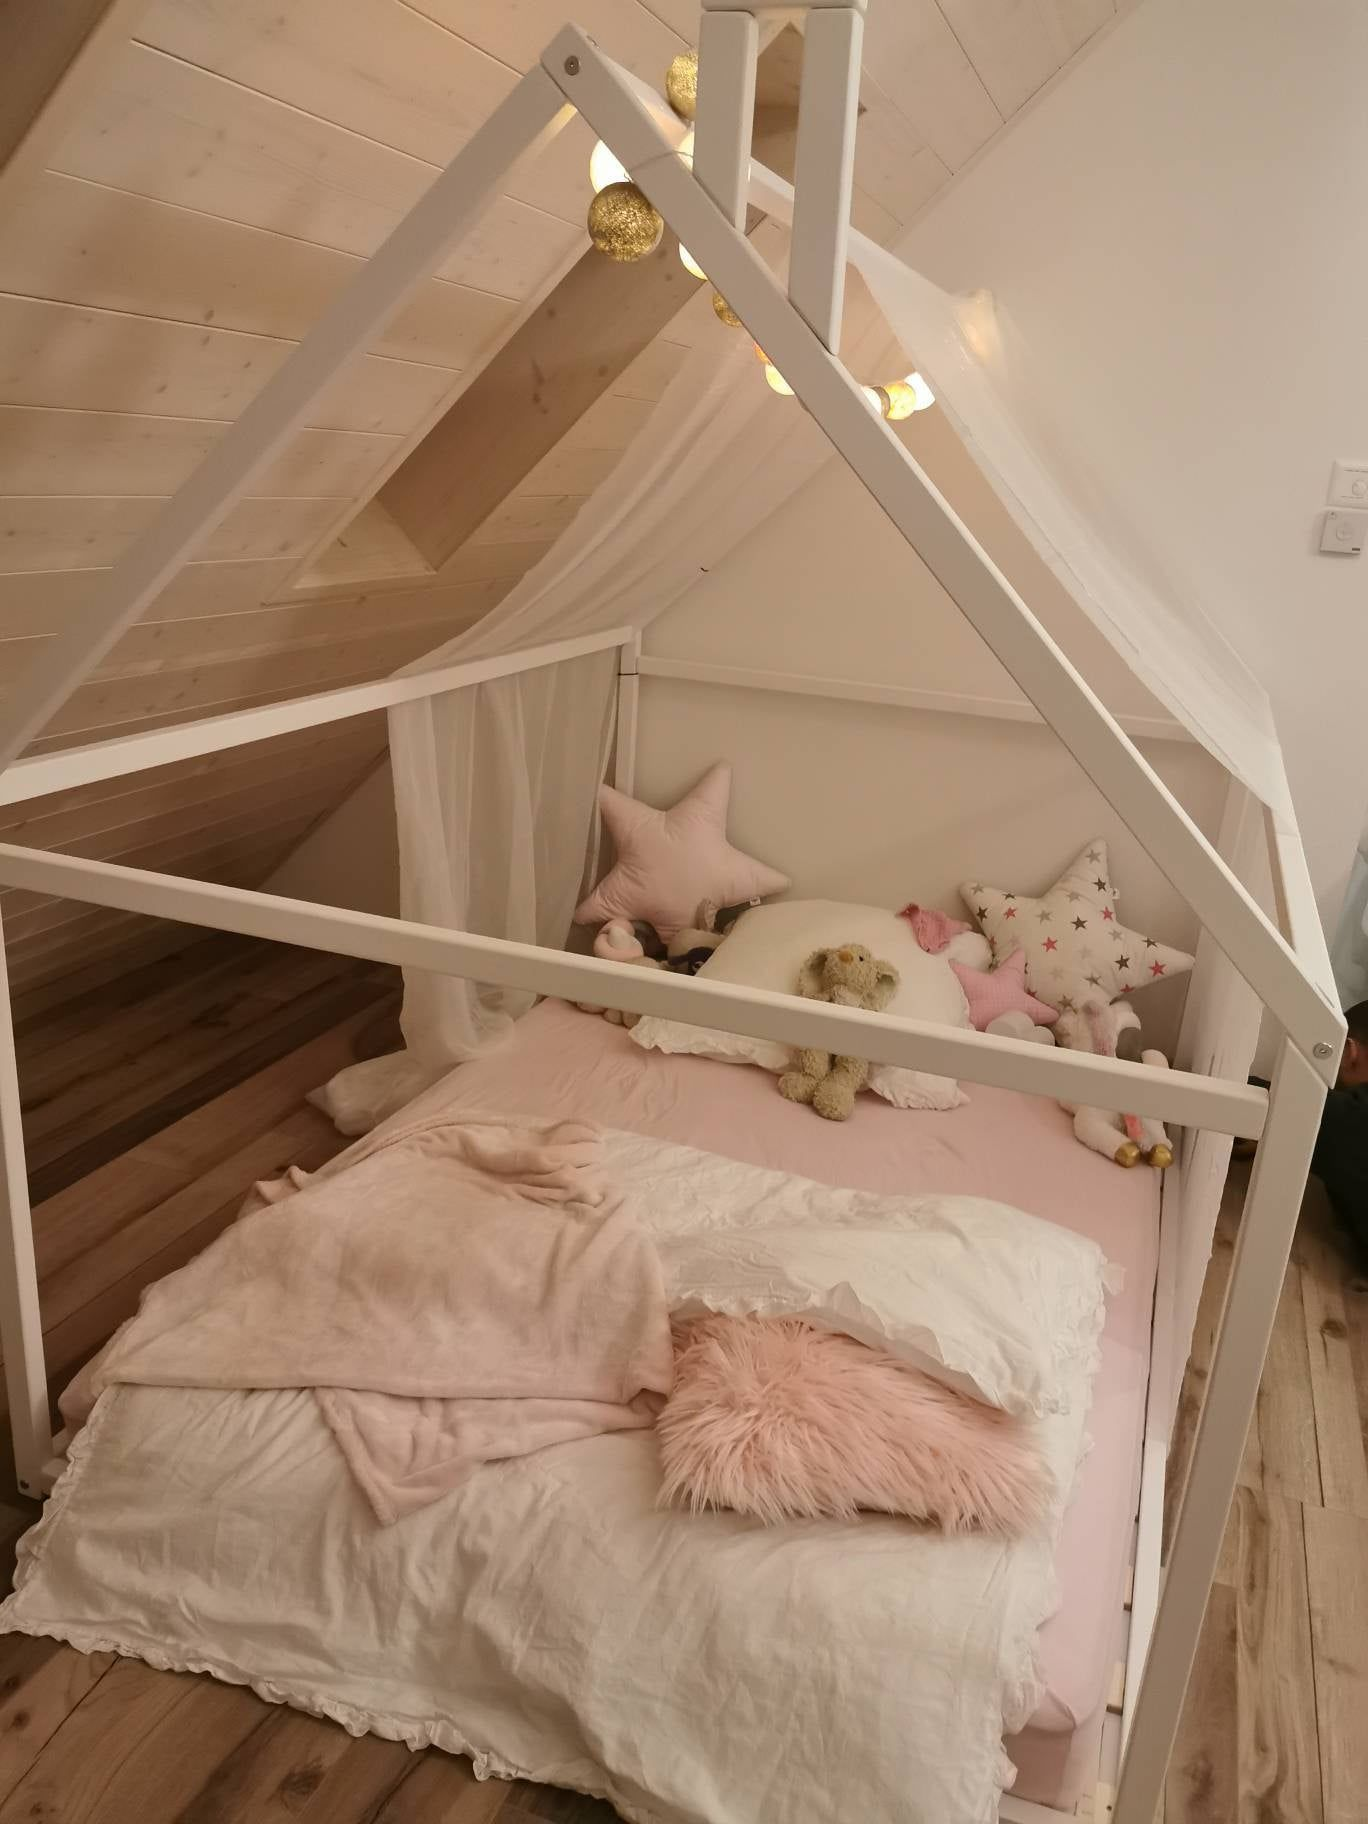 Wood Bed Full Double Toddler Bed Frame Tent Bed Wooden House